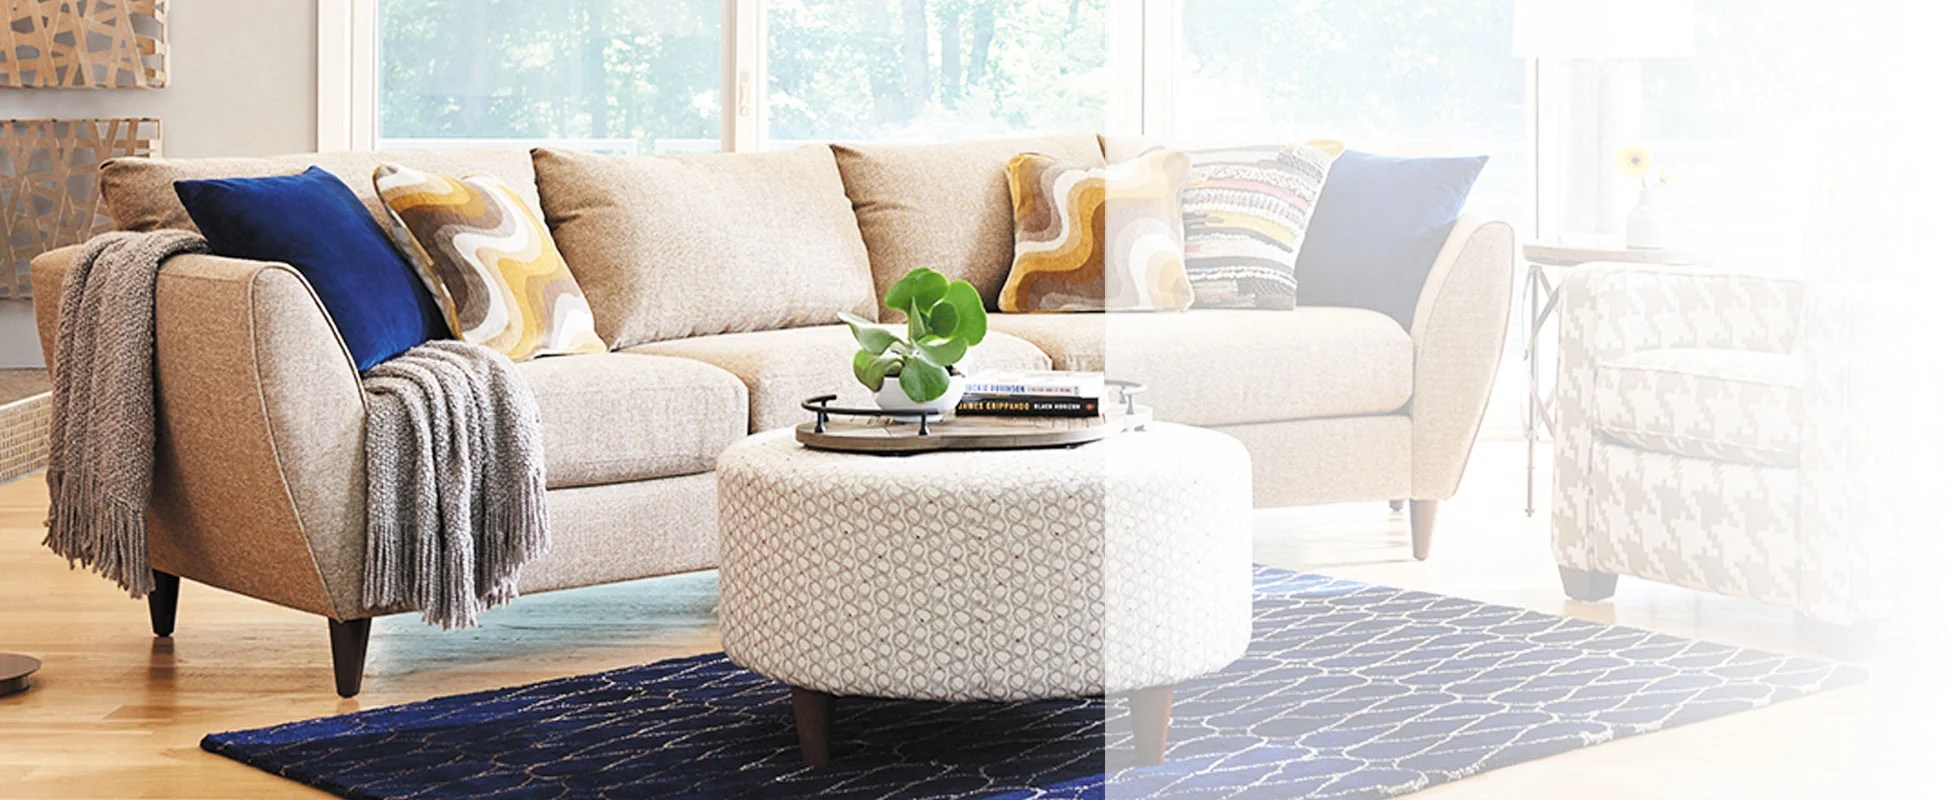 dalton sofa leon s corner sofas for under 200 living room tables la z boy comfort and style